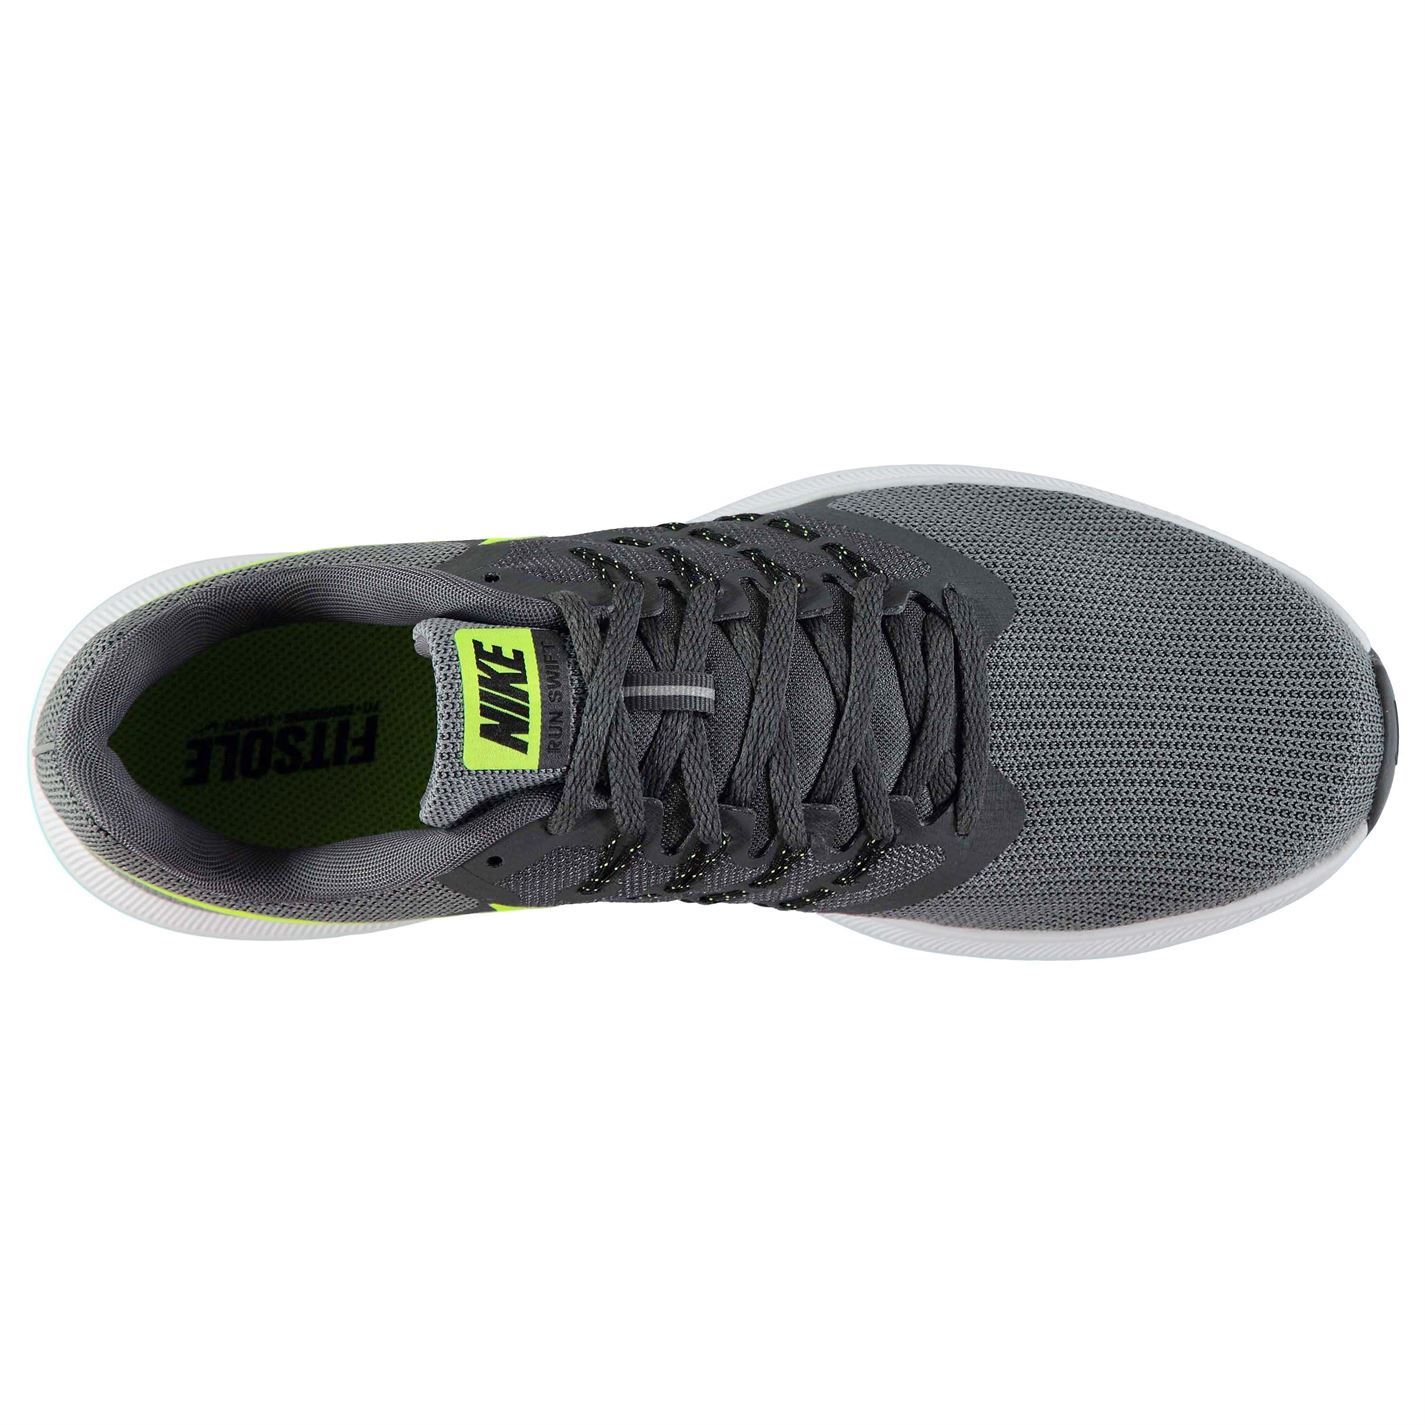 e6cbe31b6fb93 Nike Run Swift Running Shoes Mens Grey Volt Jogging Trainers Sneakers